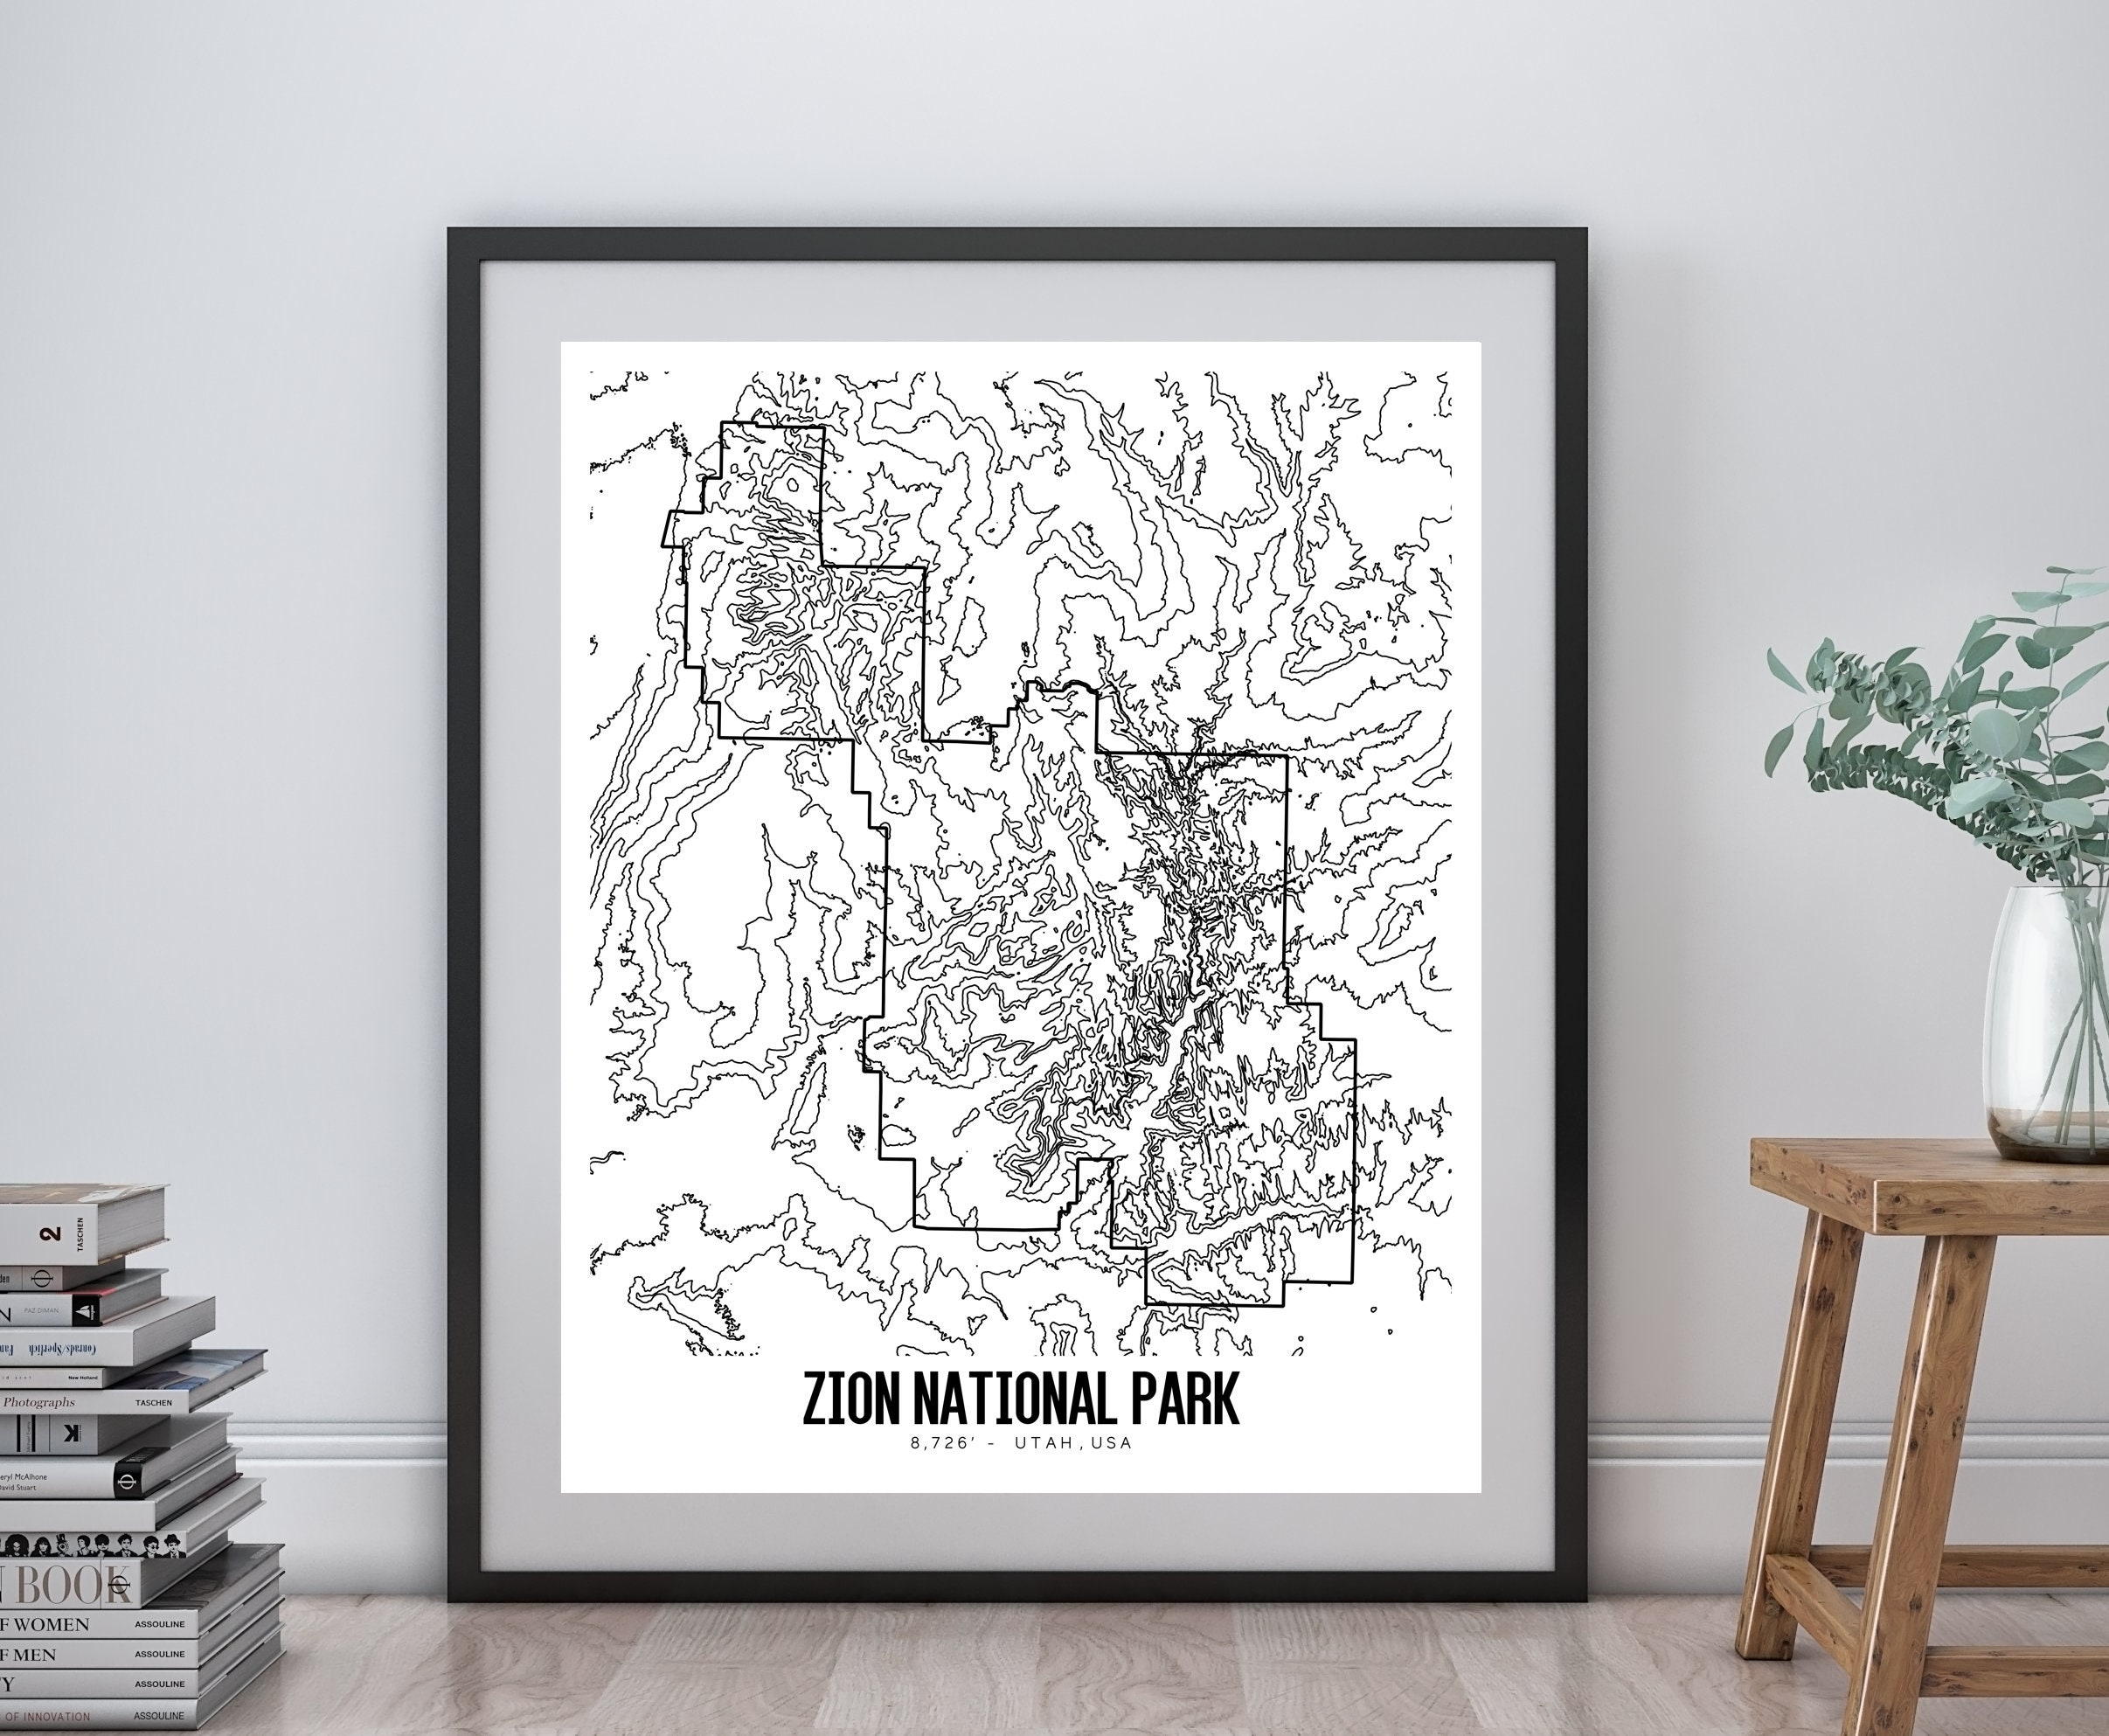 Zion National Park Printable Topographic Map 16x20 Zion Map | Etsy on